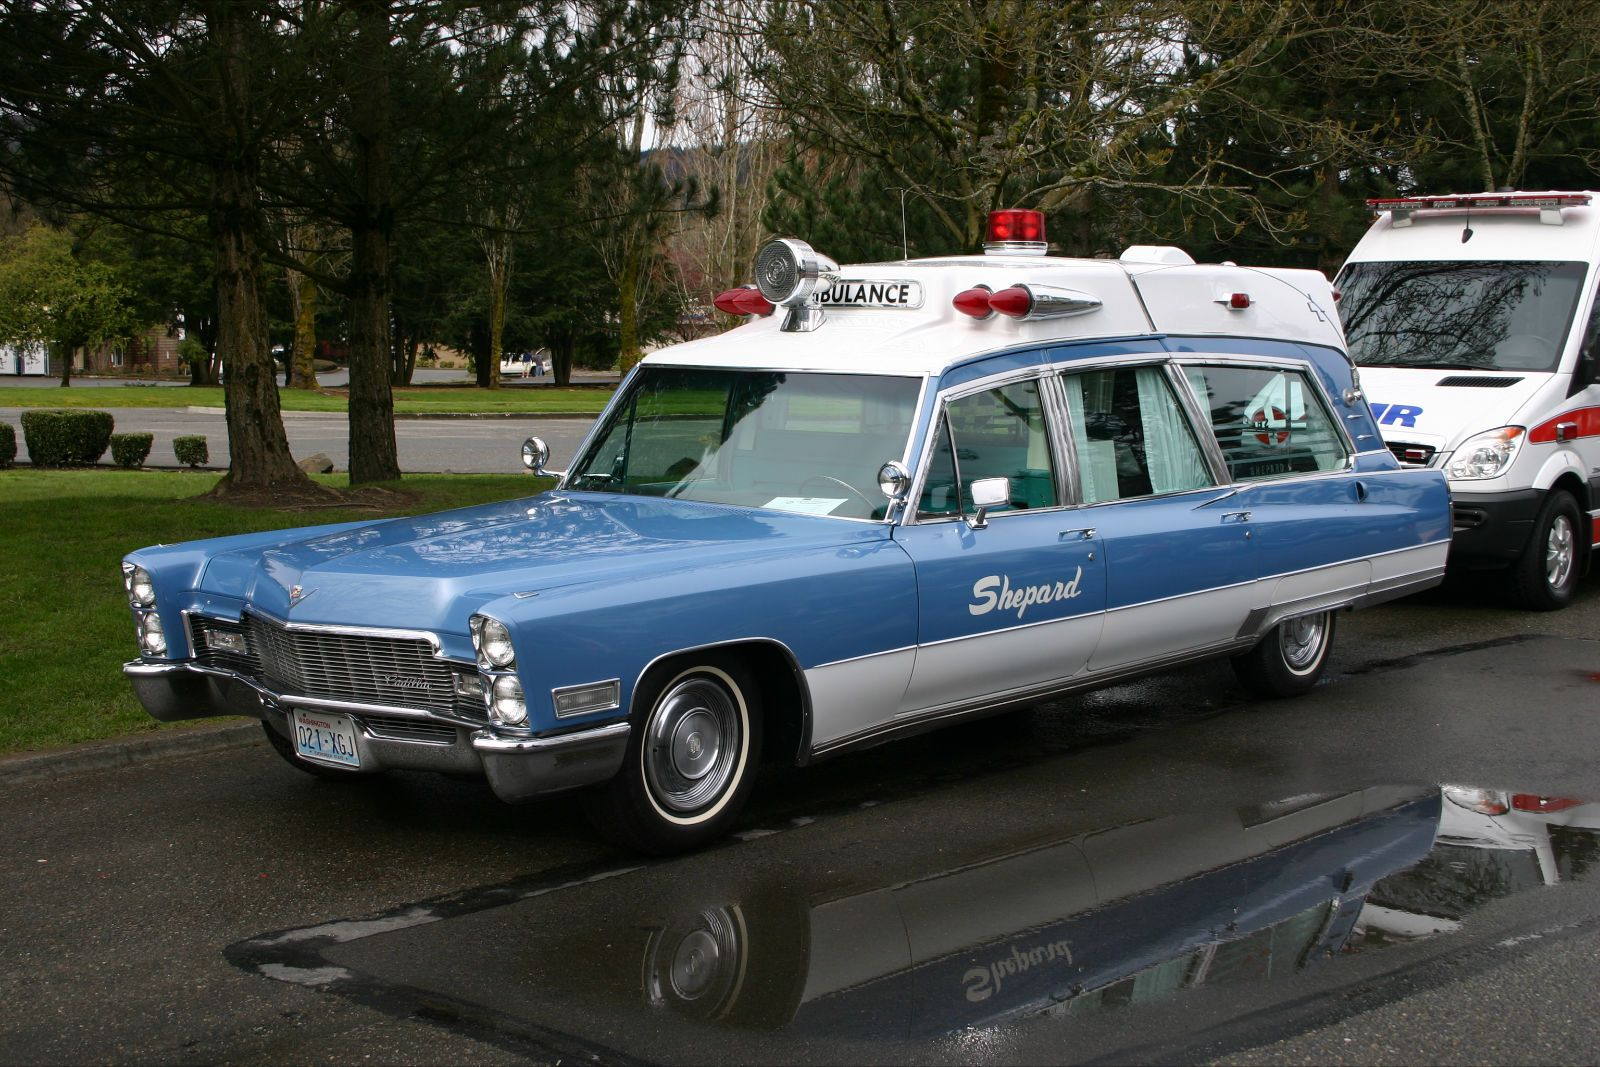 1968 cadillac ambulance service ambulance cadillac cars. Black Bedroom Furniture Sets. Home Design Ideas